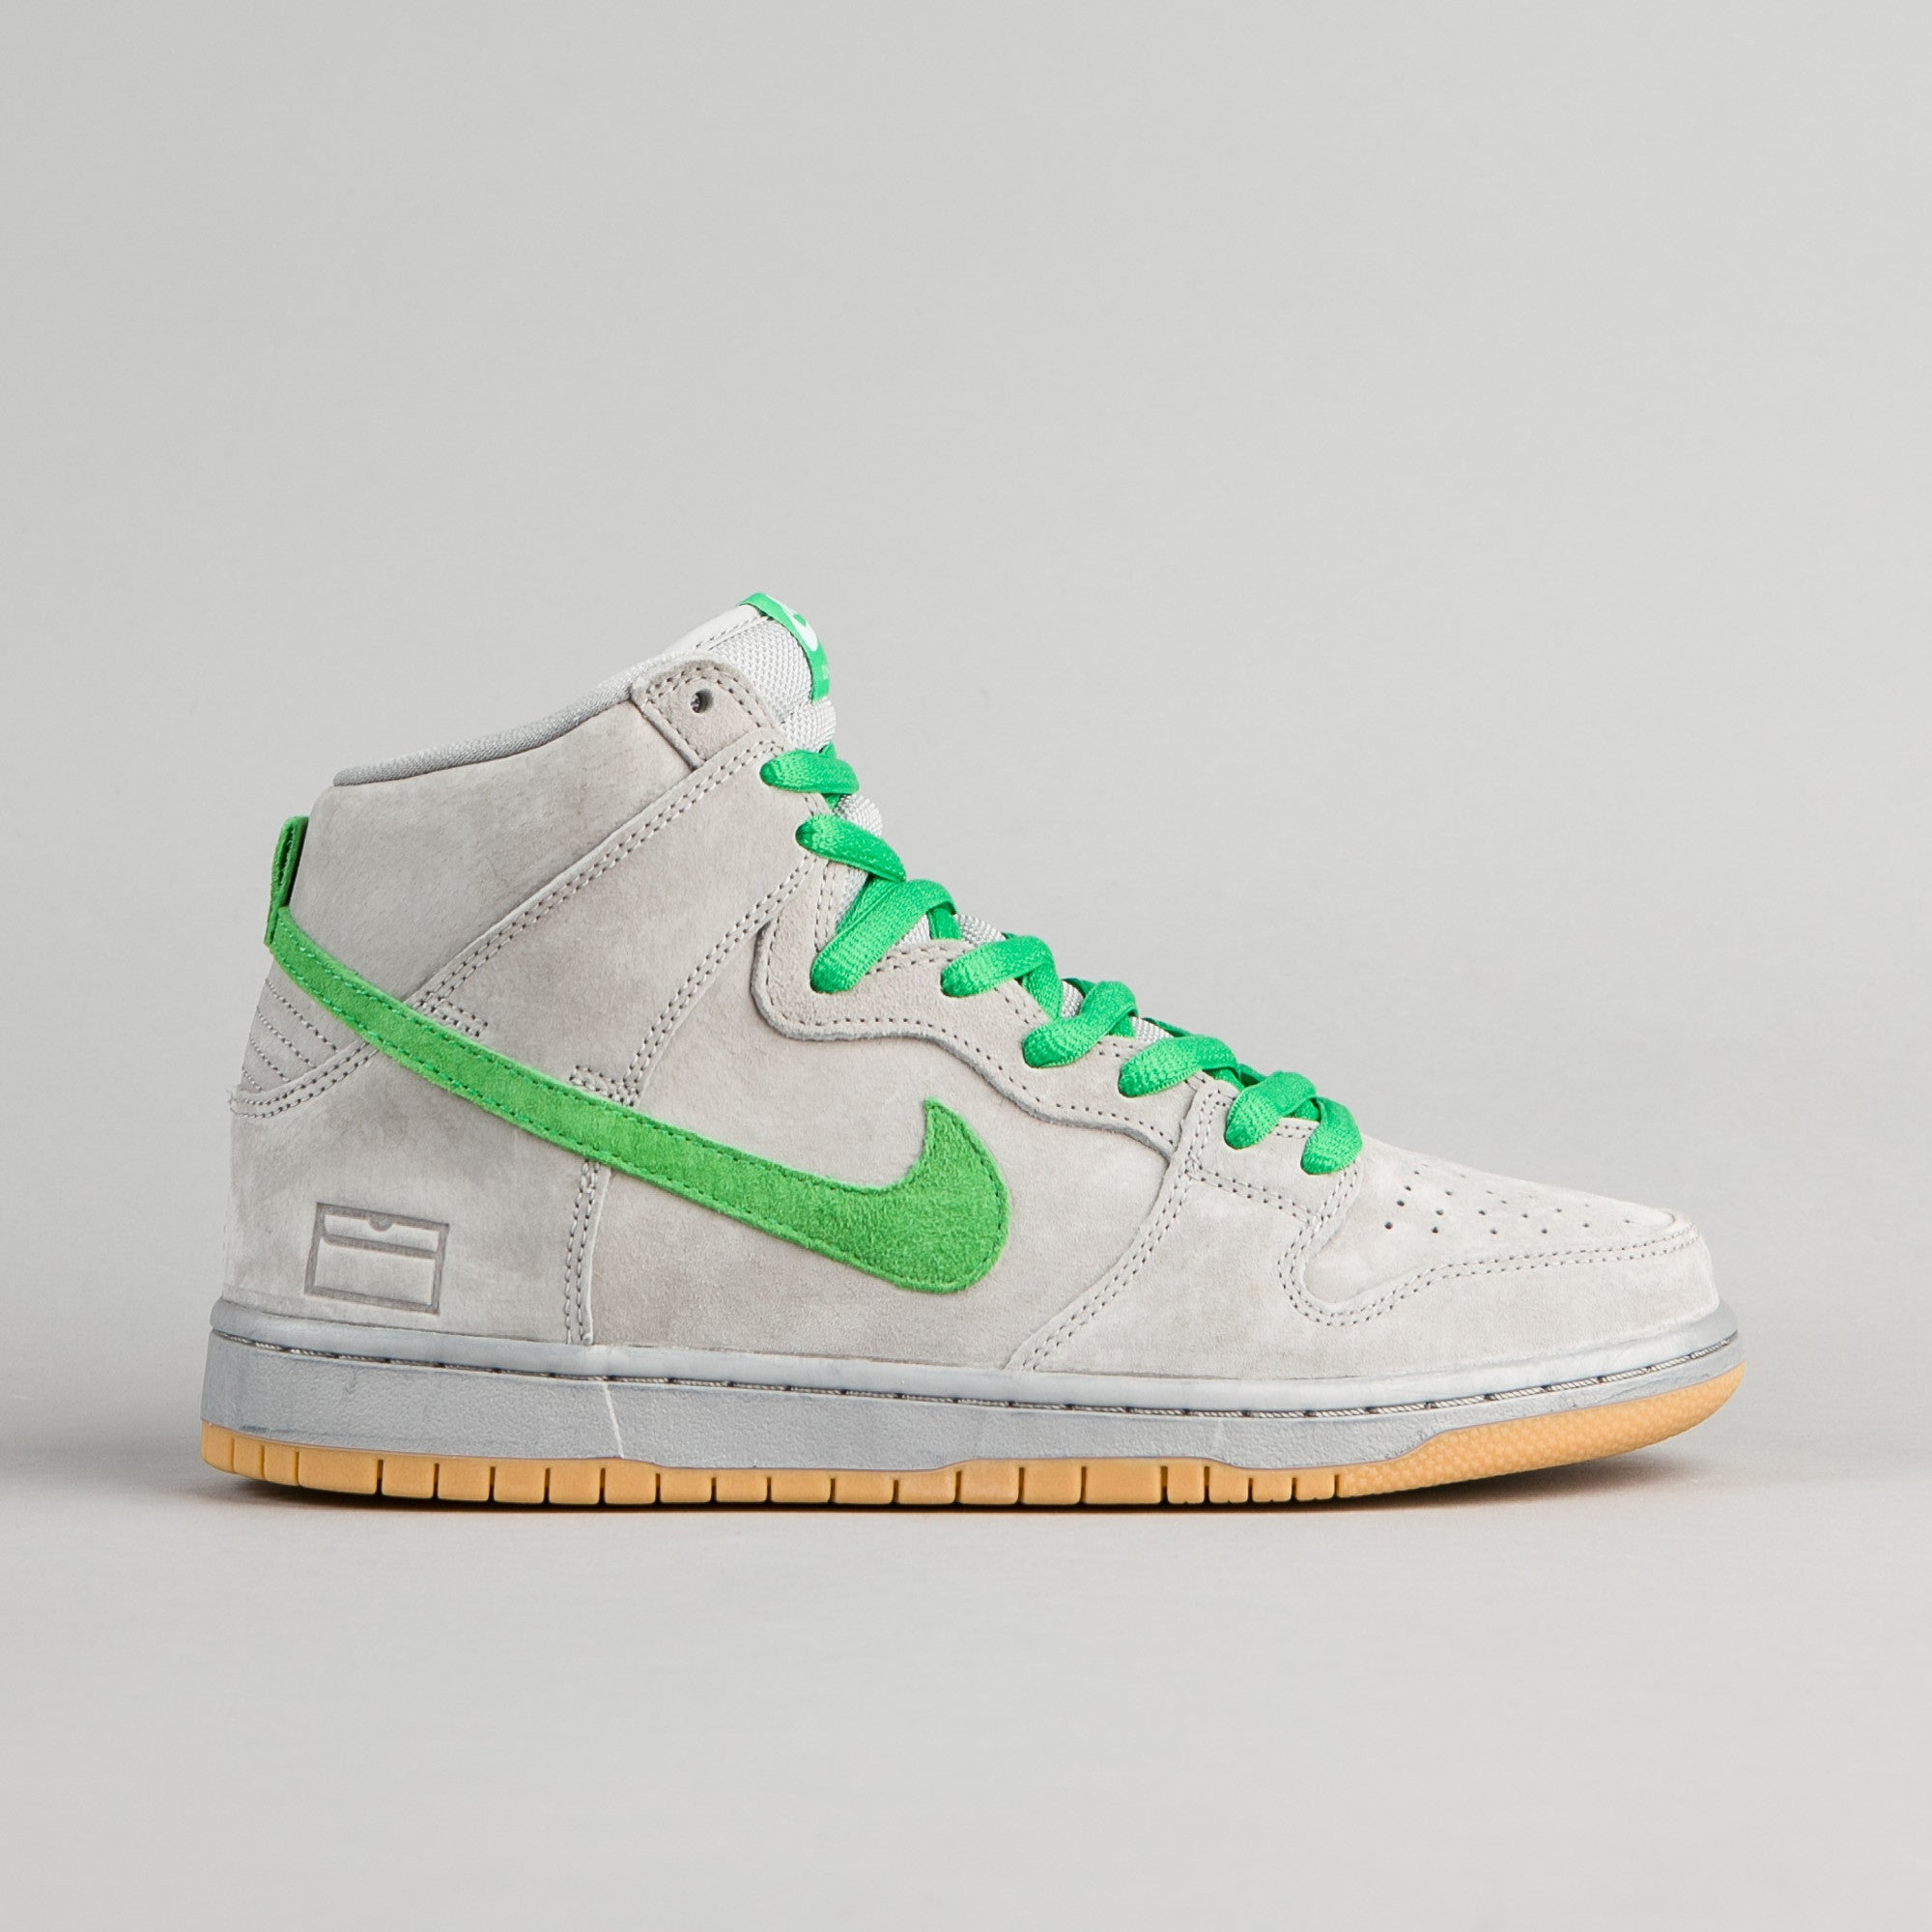 premium selection a8406 53df5 Nike SB Dunk High Premium Shoes - Metallic Silver   Hyper Verde - Gum Yellow